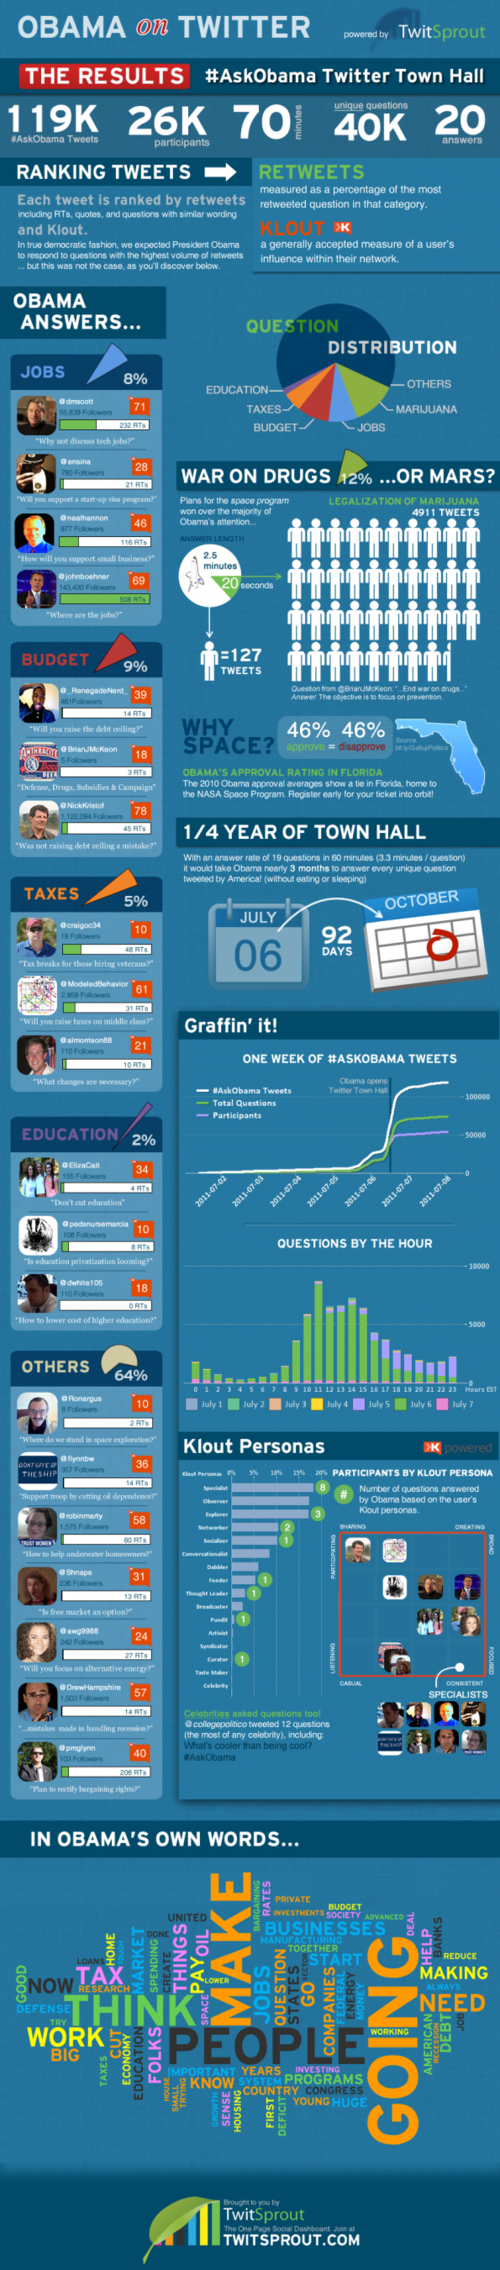 Obama on Twitter [infographic]